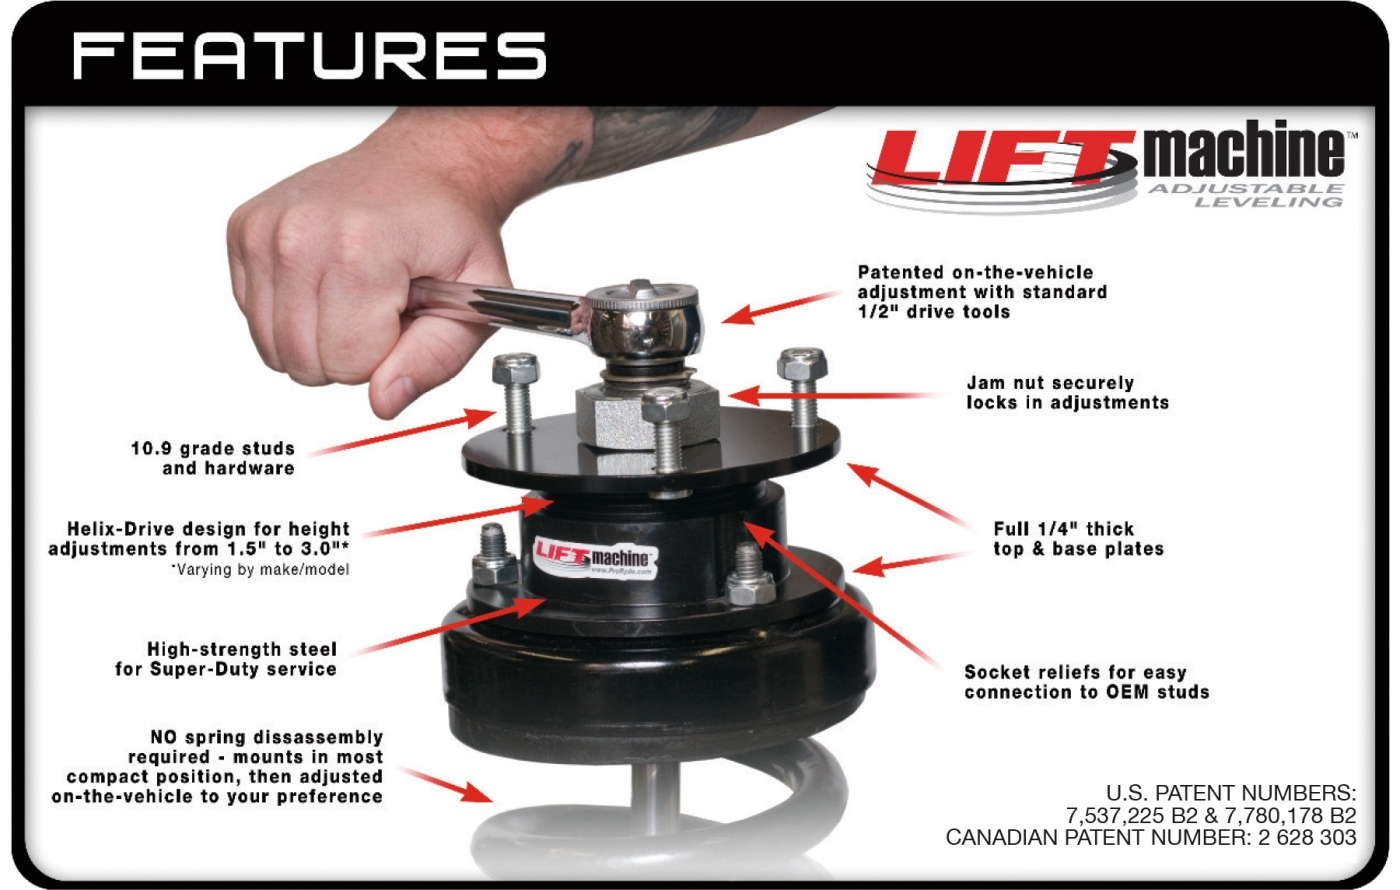 lift machine features